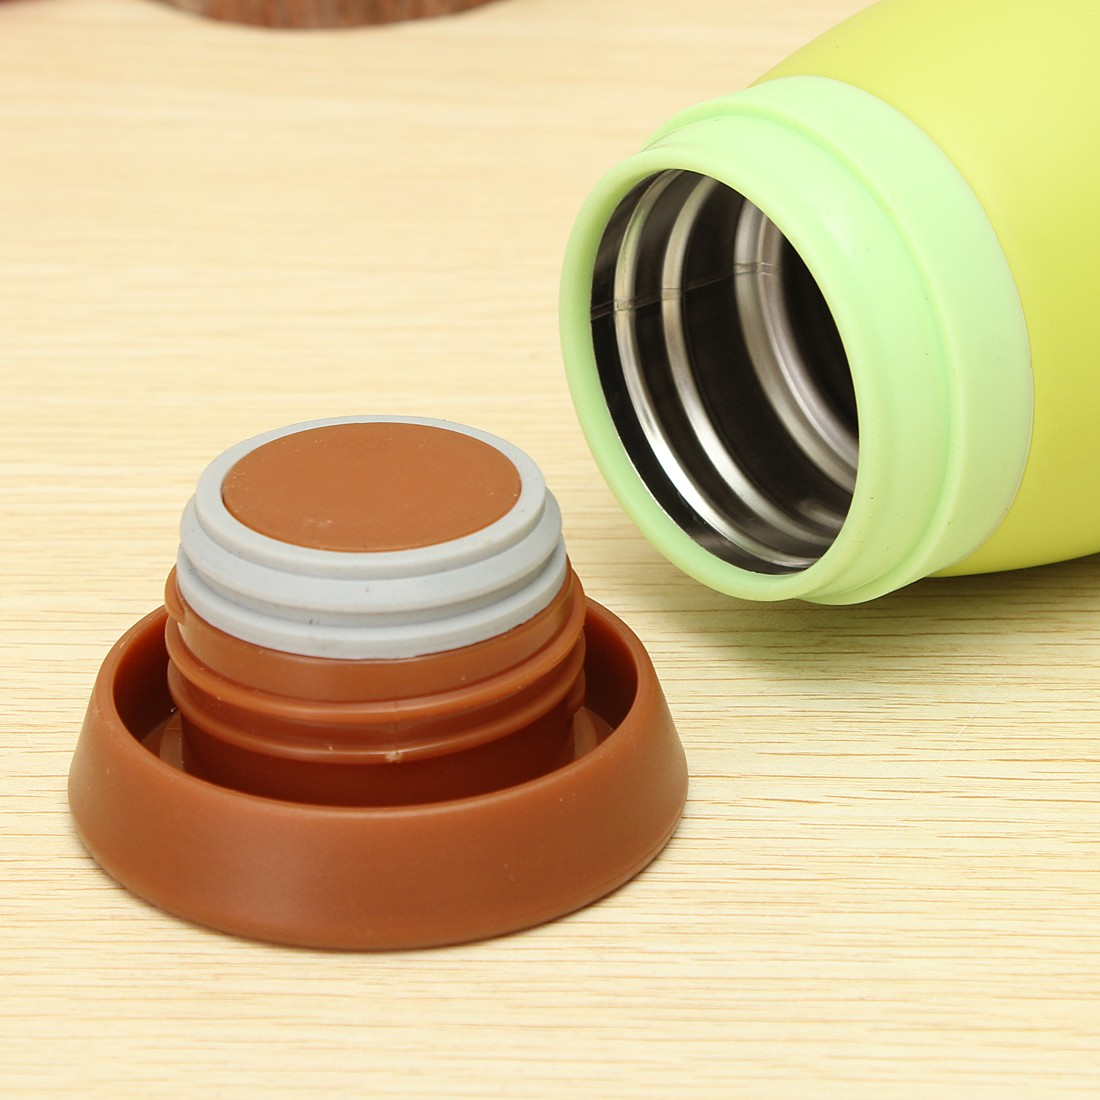 Colourful Cute Cartoon Thermos Insulated Mik Water Bottle 500ml Gelas Plastik Tutup Tumbler Colorfull Green